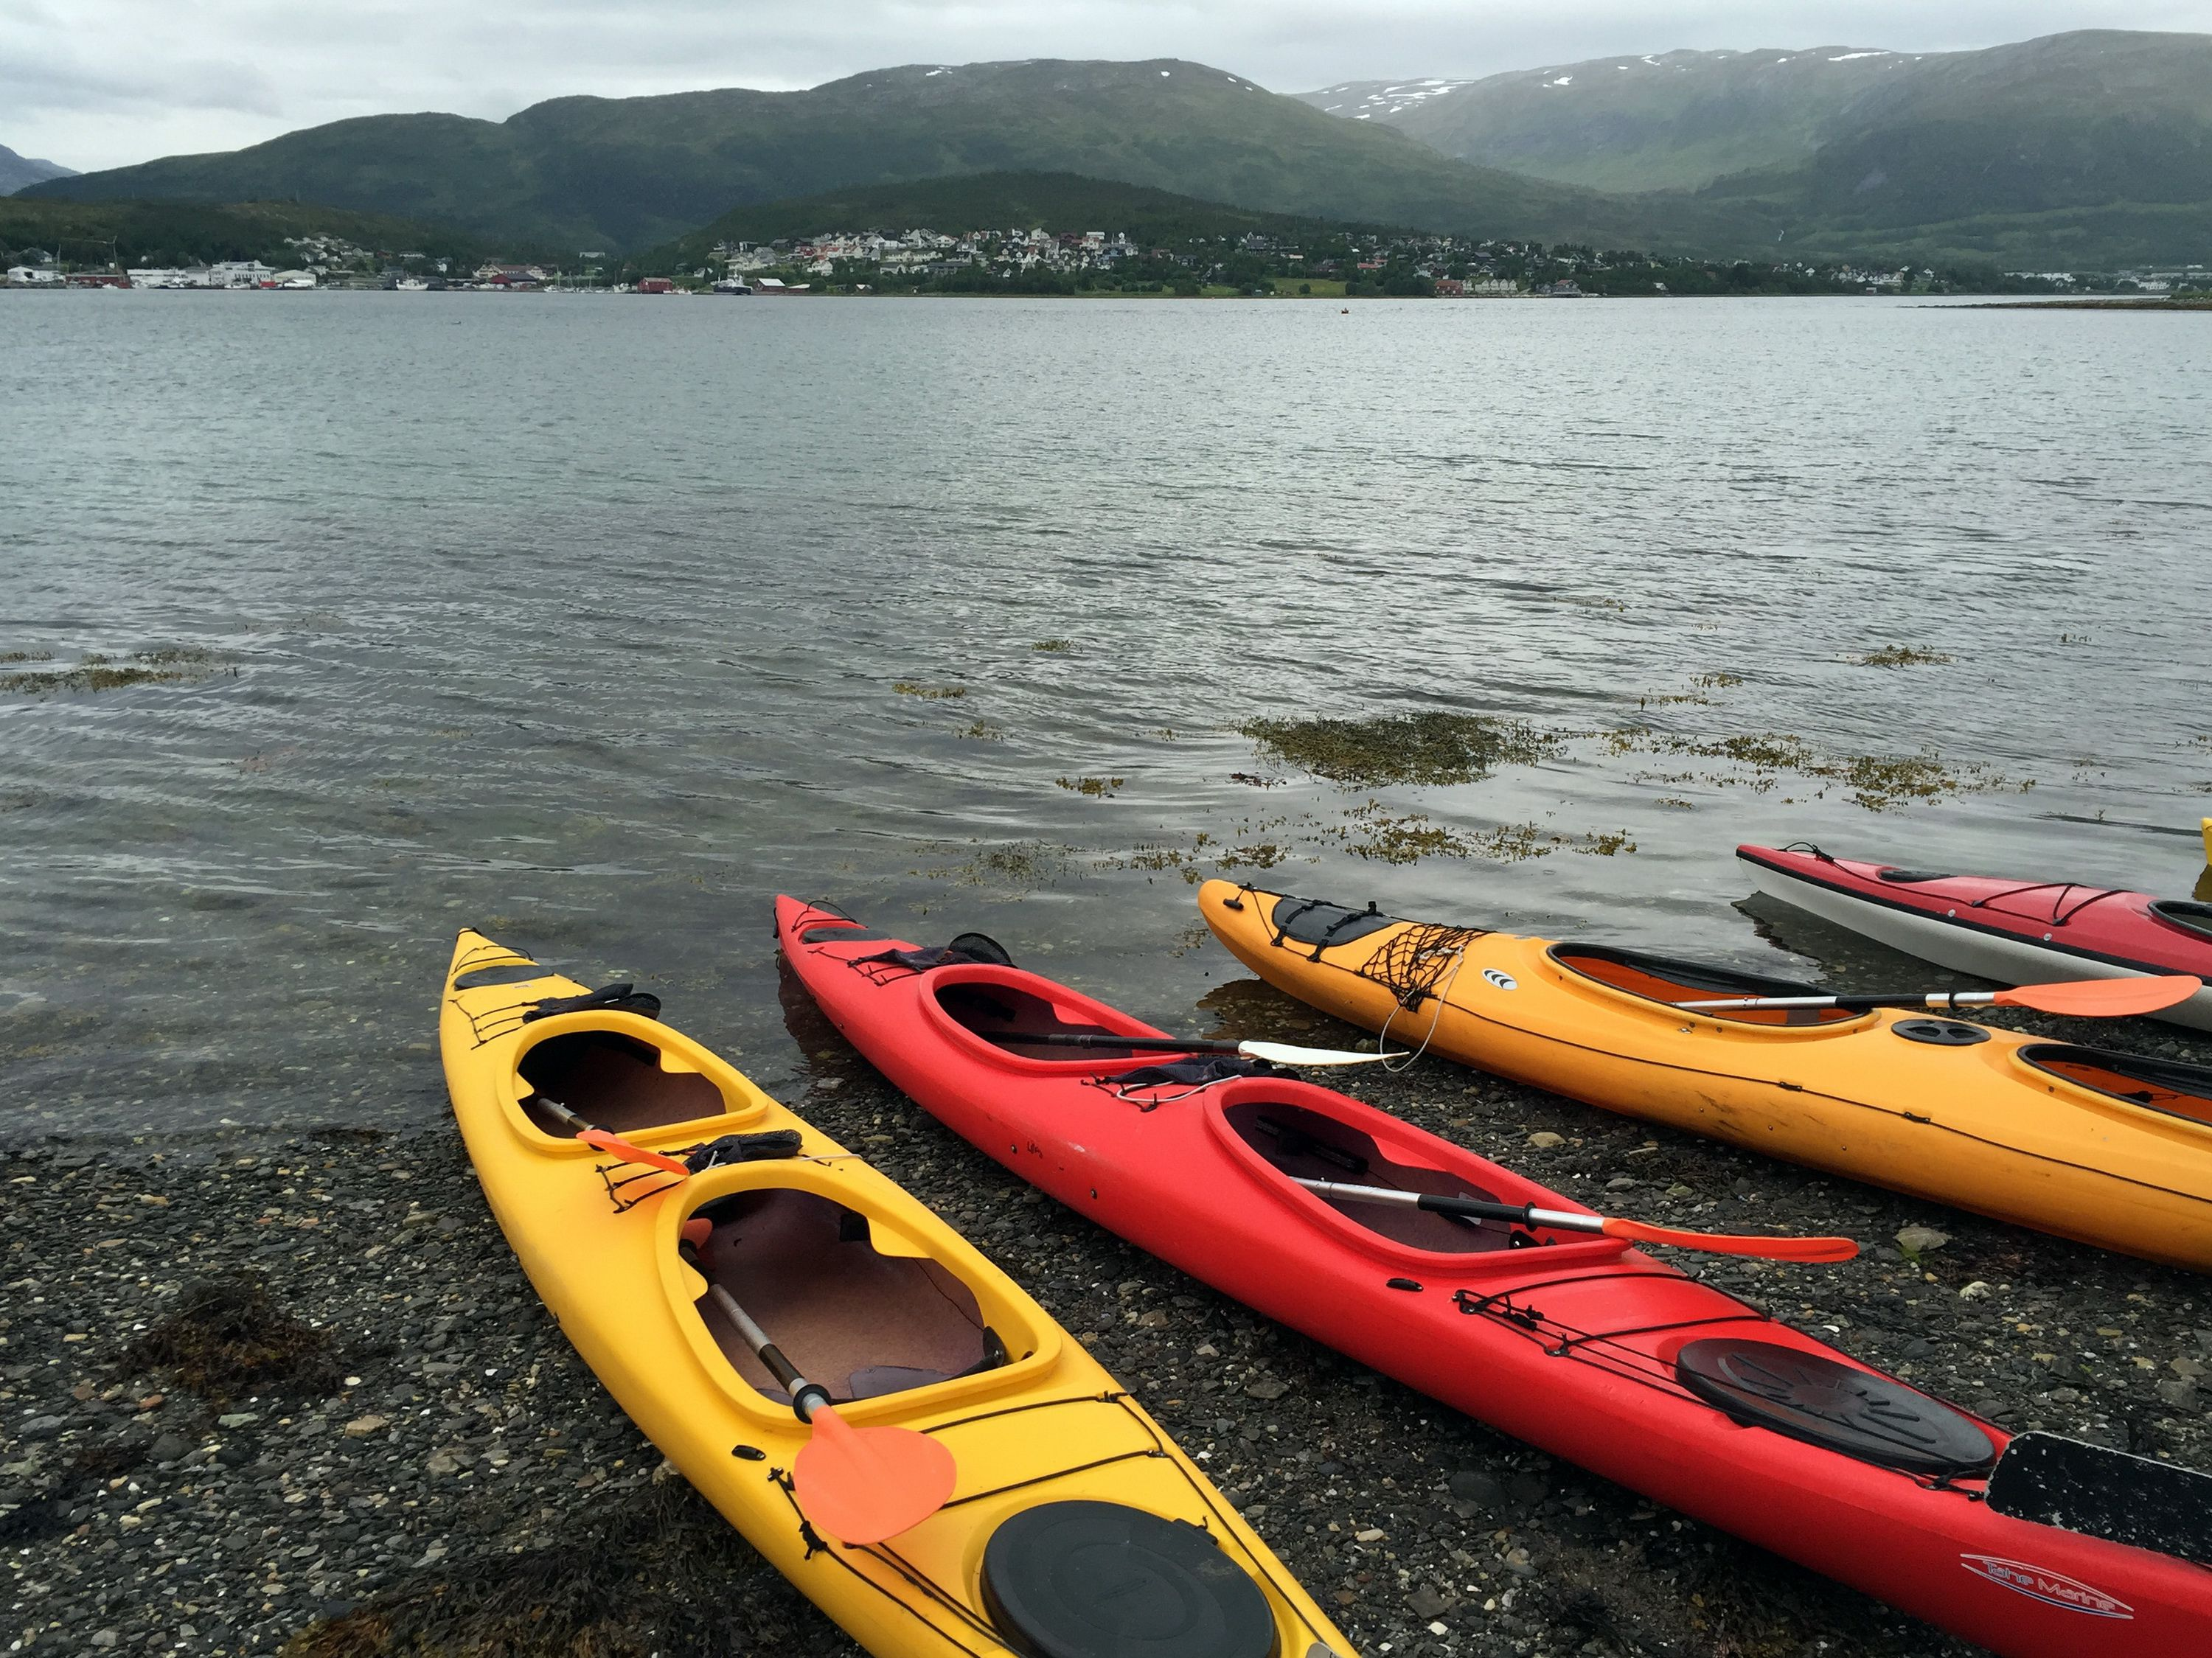 Four red and yellow kayaks in water